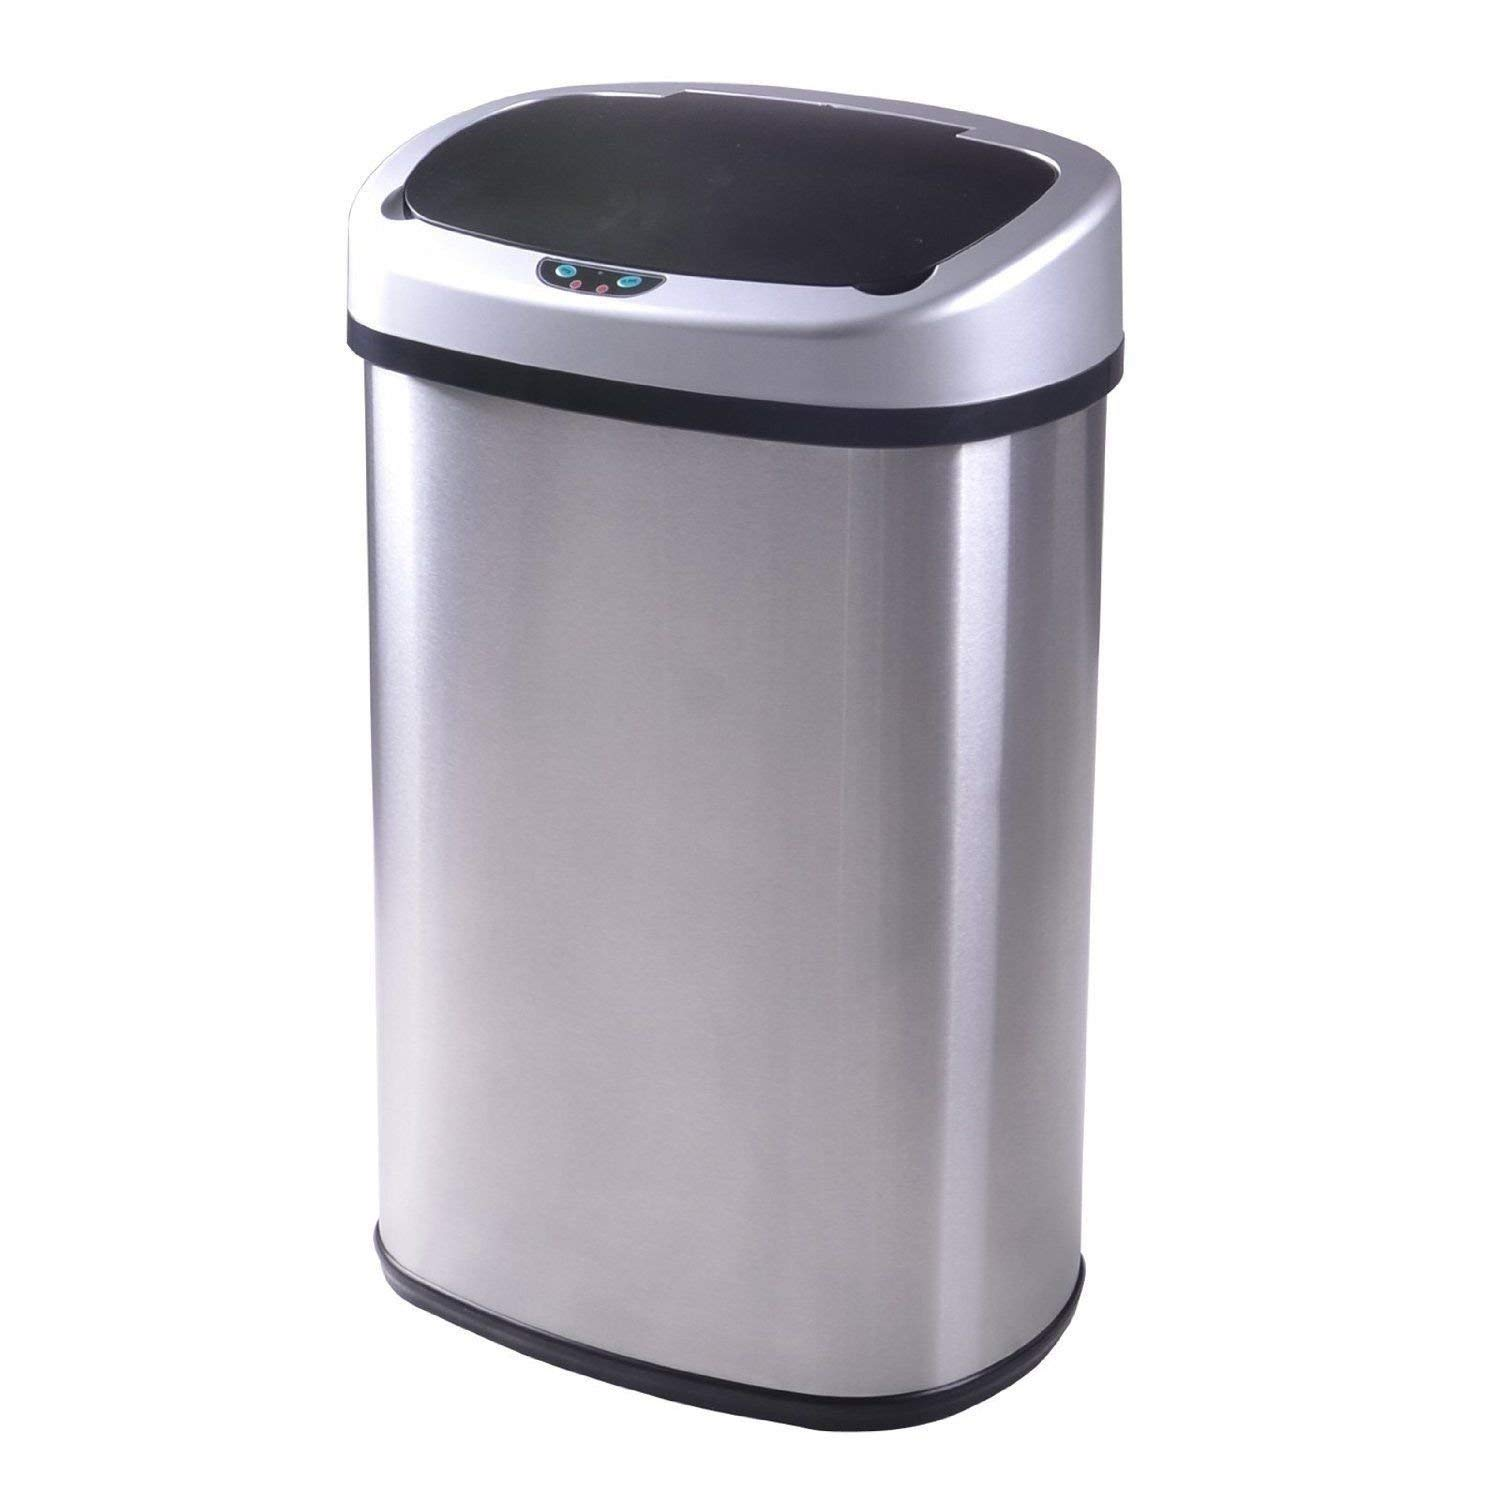 Details about Touch-Free Sensor Automatic13-Gallon Stainless-Steel Trash  Can Kitchen 50R New